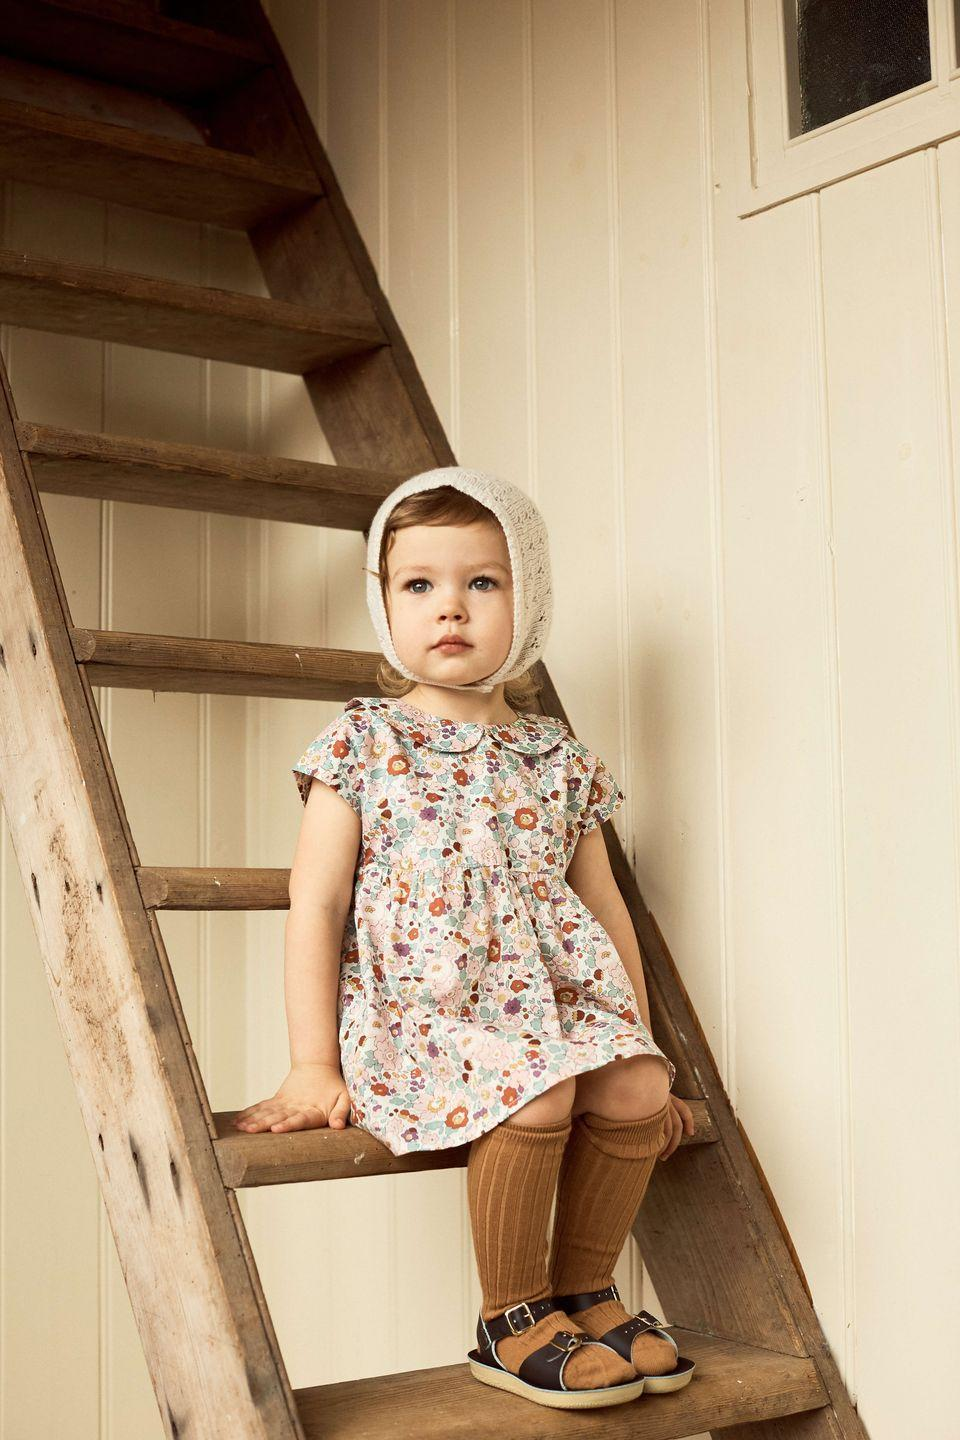 """<p>Frills, florals and the finest cashmere, this luxury British label has all the ingredients the British royals love when it comes to dressing their children. No wonder <a href=""""https://www.harpersbazaar.com/uk/culture/culture-news/news/a37048/new-pictures-of-princess-charlotte-for-her-first-birthday-duchess-of-cambridge/"""" rel=""""nofollow noopener"""" target=""""_blank"""" data-ylk=""""slk:Princess Charlotte was spotted in one of their cardigans"""" class=""""link rapid-noclick-resp"""">Princess Charlotte was spotted in one of their cardigans</a> for her first birthday photo. </p><a class=""""link rapid-noclick-resp"""" href=""""https://www.olivierbaby.com/"""" rel=""""nofollow noopener"""" target=""""_blank"""" data-ylk=""""slk:SHOP NOW"""">SHOP NOW</a>"""